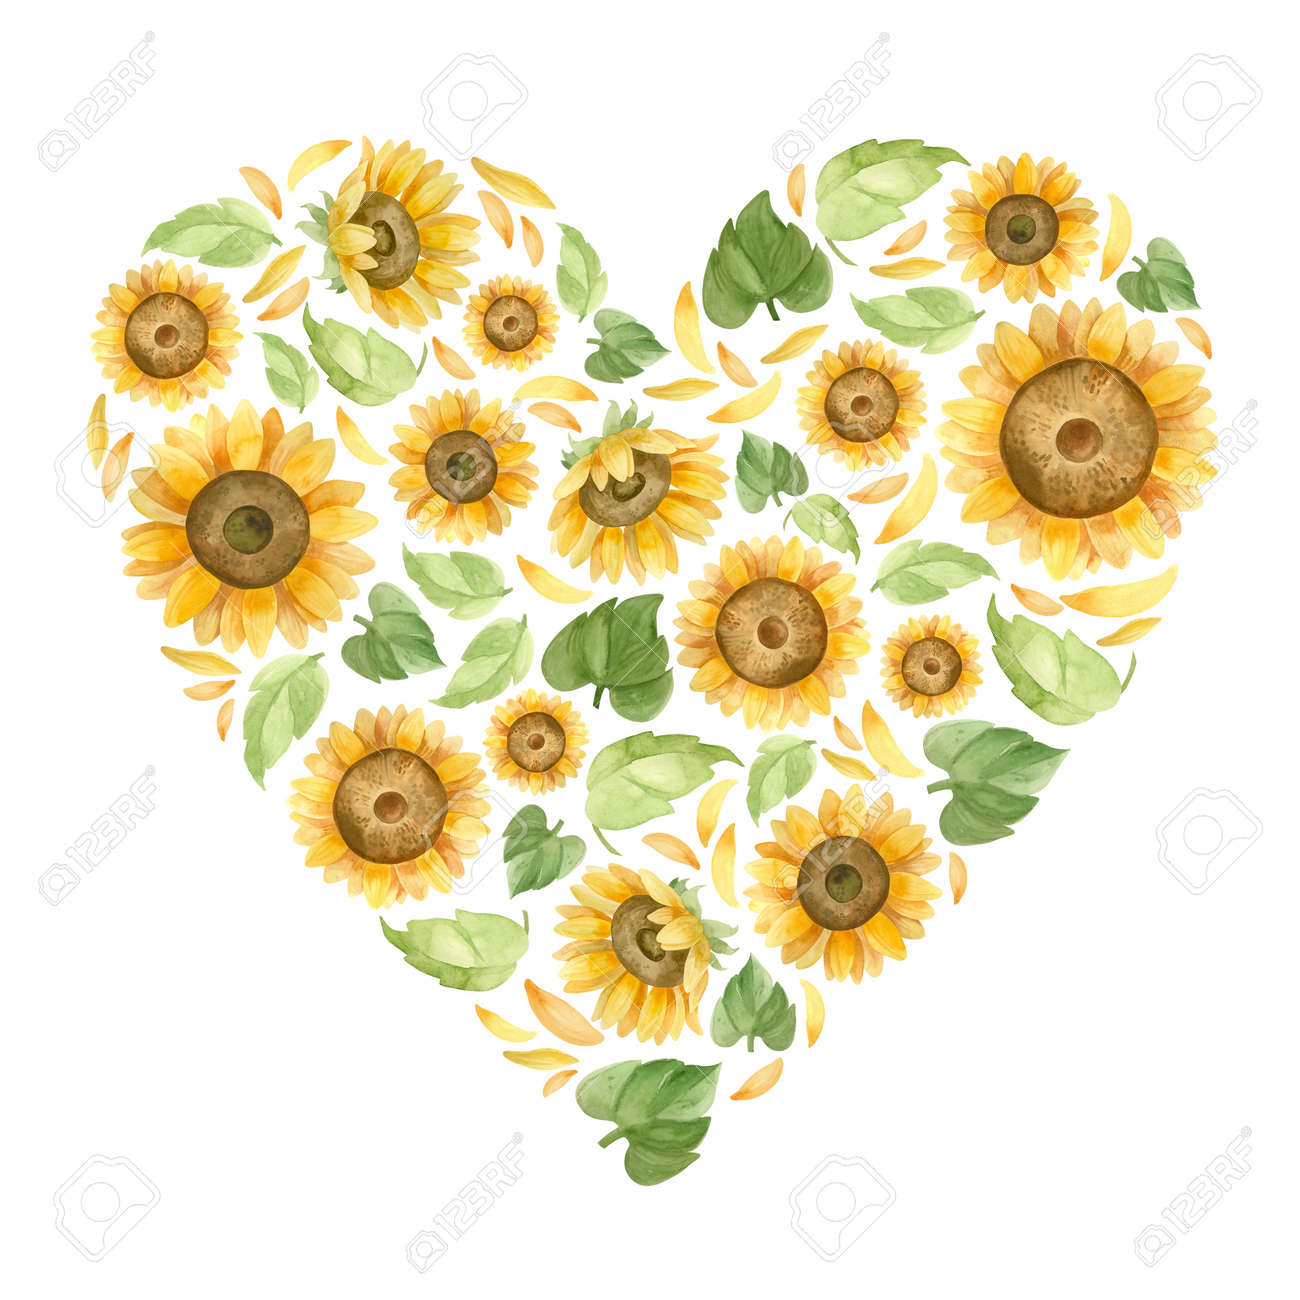 Heart with sunflowers. Template for a wedding invitation. Romantic watercolor clipart. - 173083453